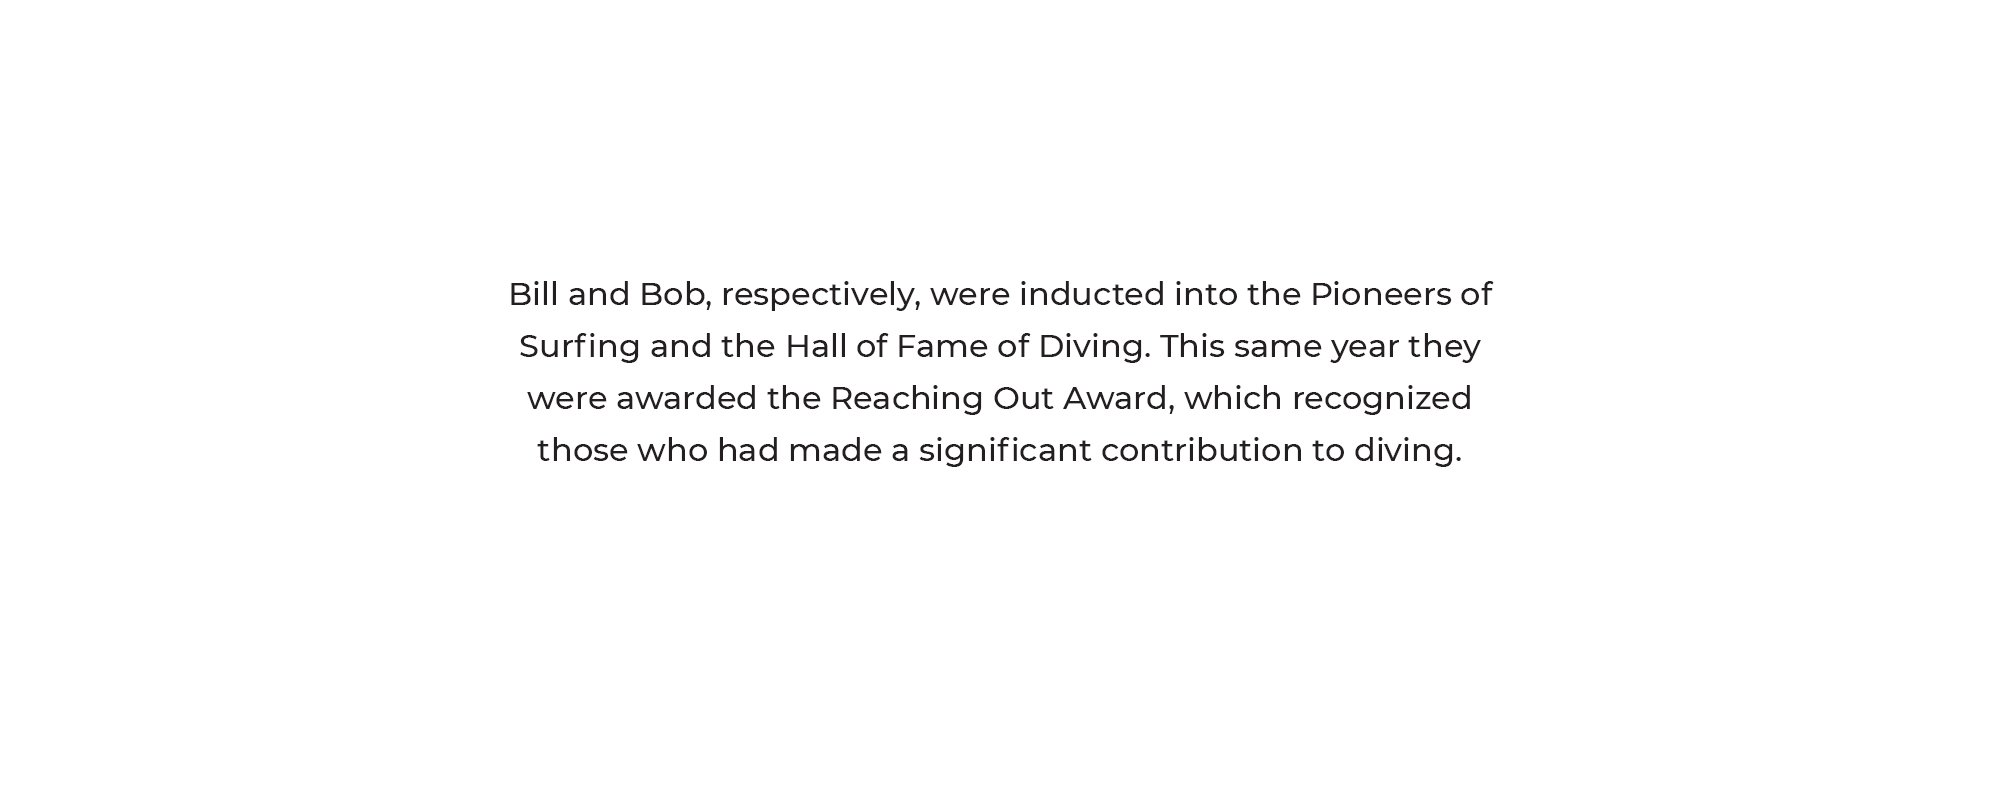 Bill and Bob, respectively, were inducted into the Pioneers of Surfing and the Hall of Fame of Diving. This same year they were awarded the Reaching Out Award, which recognized those who had made a significant contribution to diving.